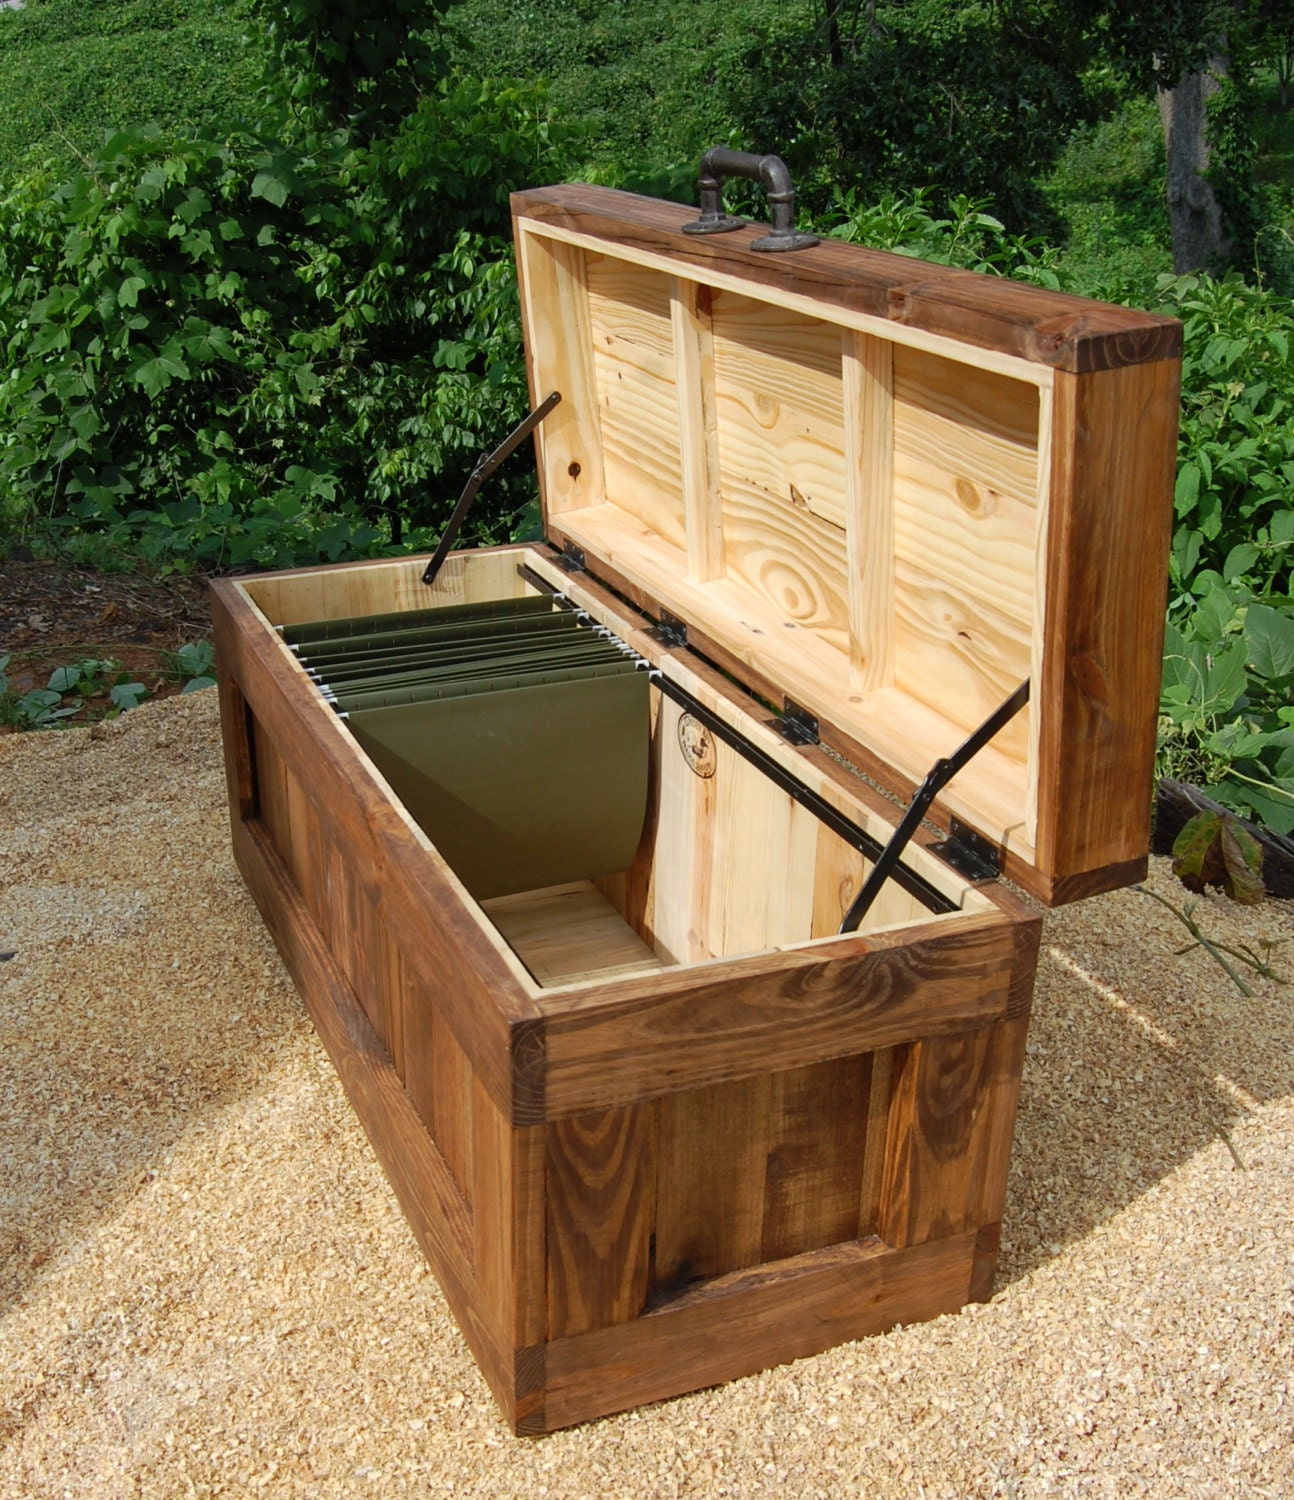 Build Your Own Coffee Table With Storage: File Cabinet Chest/ Large Hope Chest/ Coffee Table/ Bench/